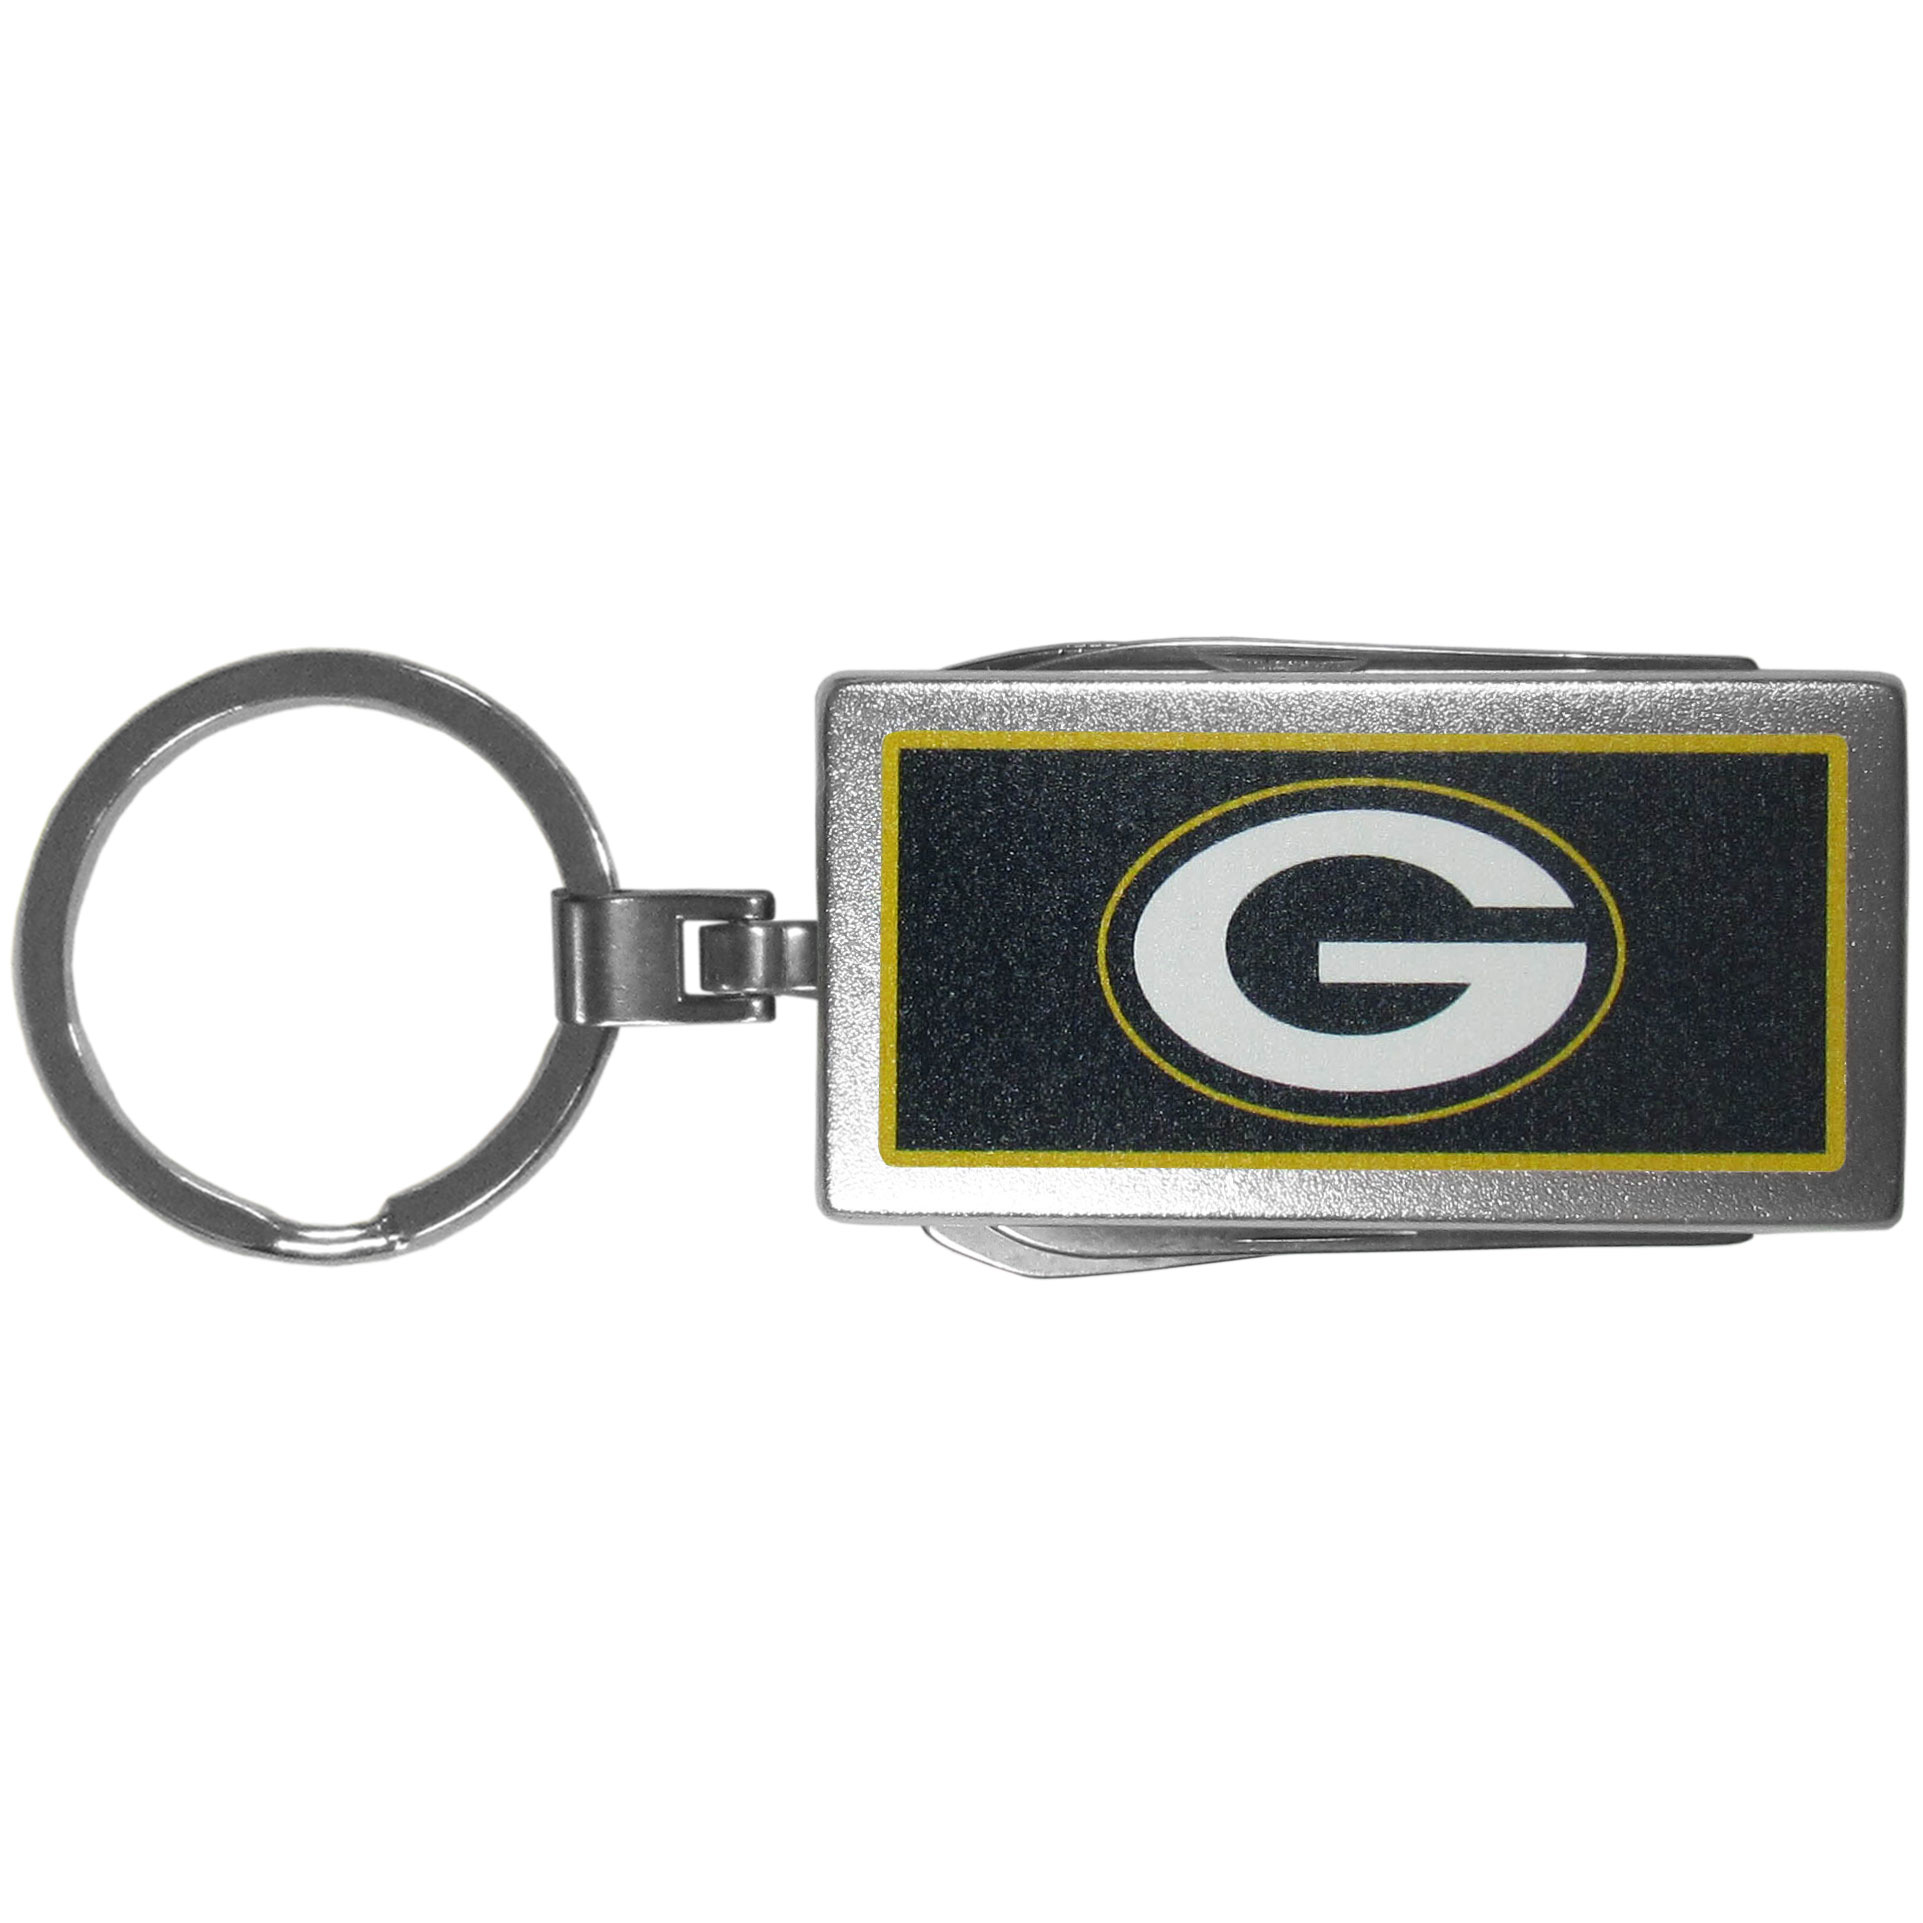 Green Bay Packers Multi-tool Key Chain, Logo - Be the hero at the tailgate, camping, or on a Friday night with your Green Bay Packers Multi-Tool Keychain which comes complete with bottle opener, scissors, knife, nail file and screw driver. Be it opening a package or a beverage Siskiyou's Multi-Tool Keychain goes wherever your keys do. The keychain hangs at 4 inches long when closed.